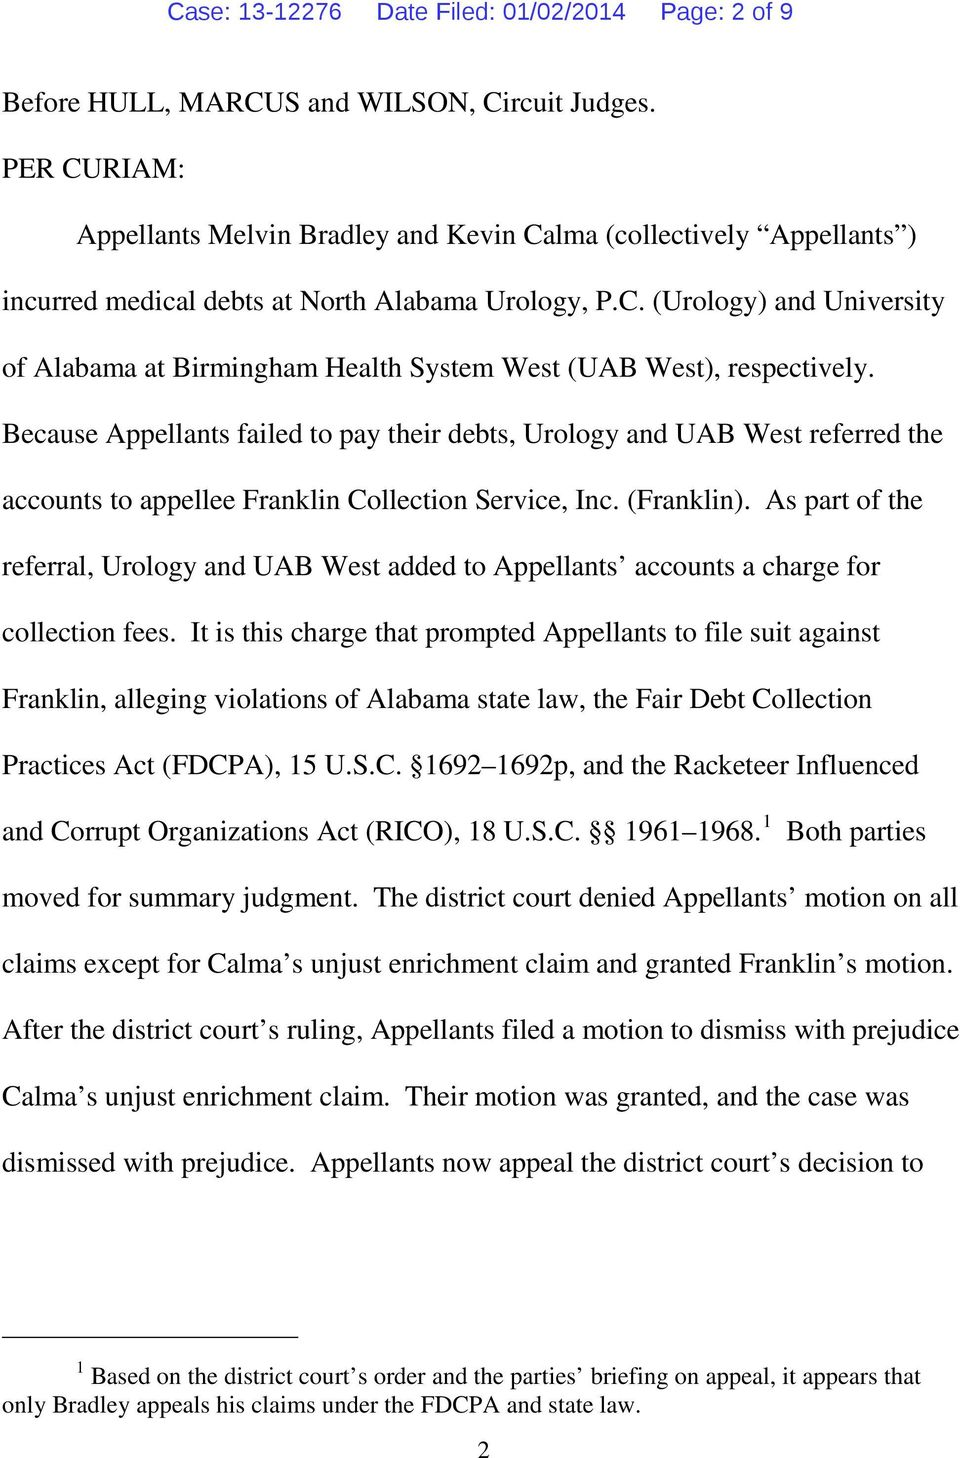 Because Appellants failed to pay their debts, Urology and UAB West referred the accounts to appellee Franklin Collection Service, Inc. (Franklin).